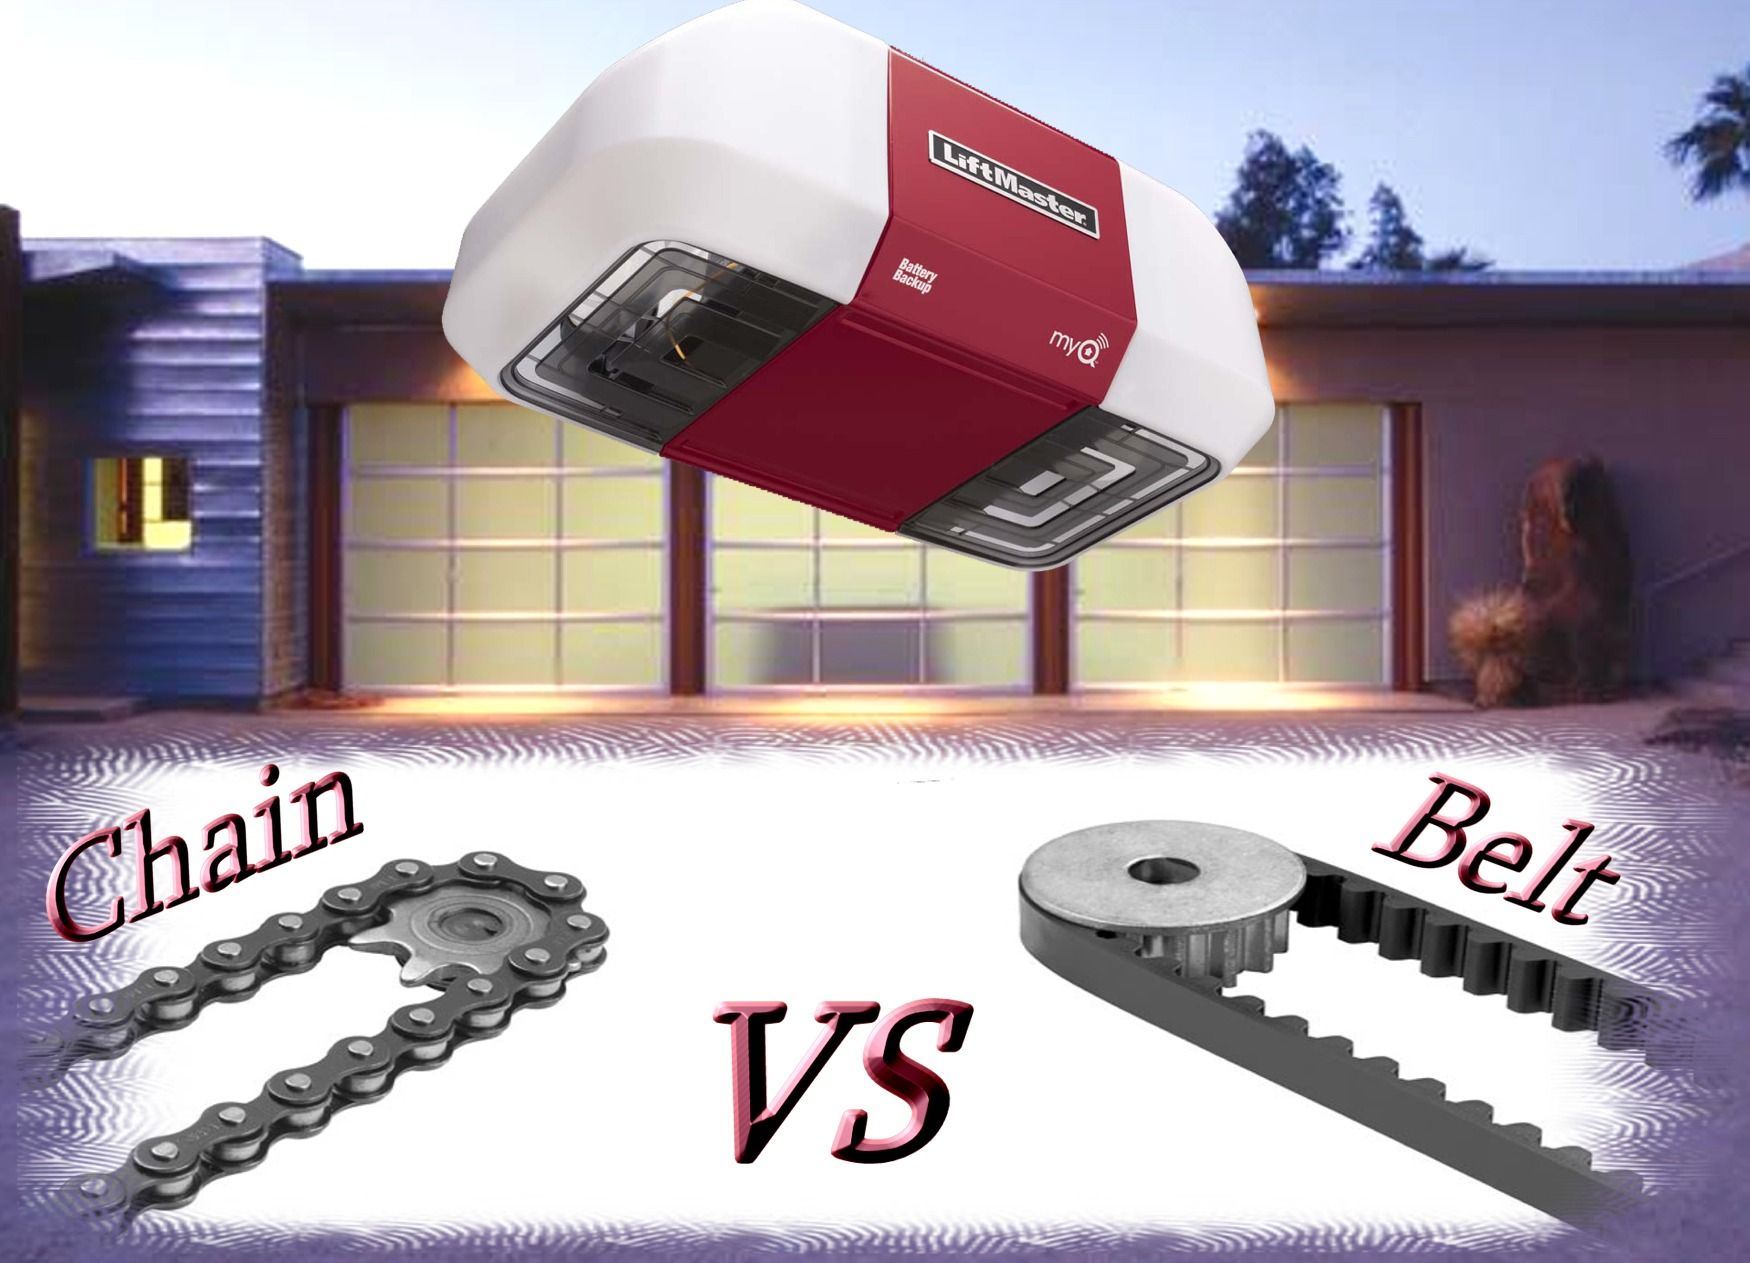 Garage Door Openers Liftmaster Belt Vs Chain Garage Door Blog In Long Island Ny Liftmaster Garage Door Garage Door Chain Liftmaster Garage Door Opener